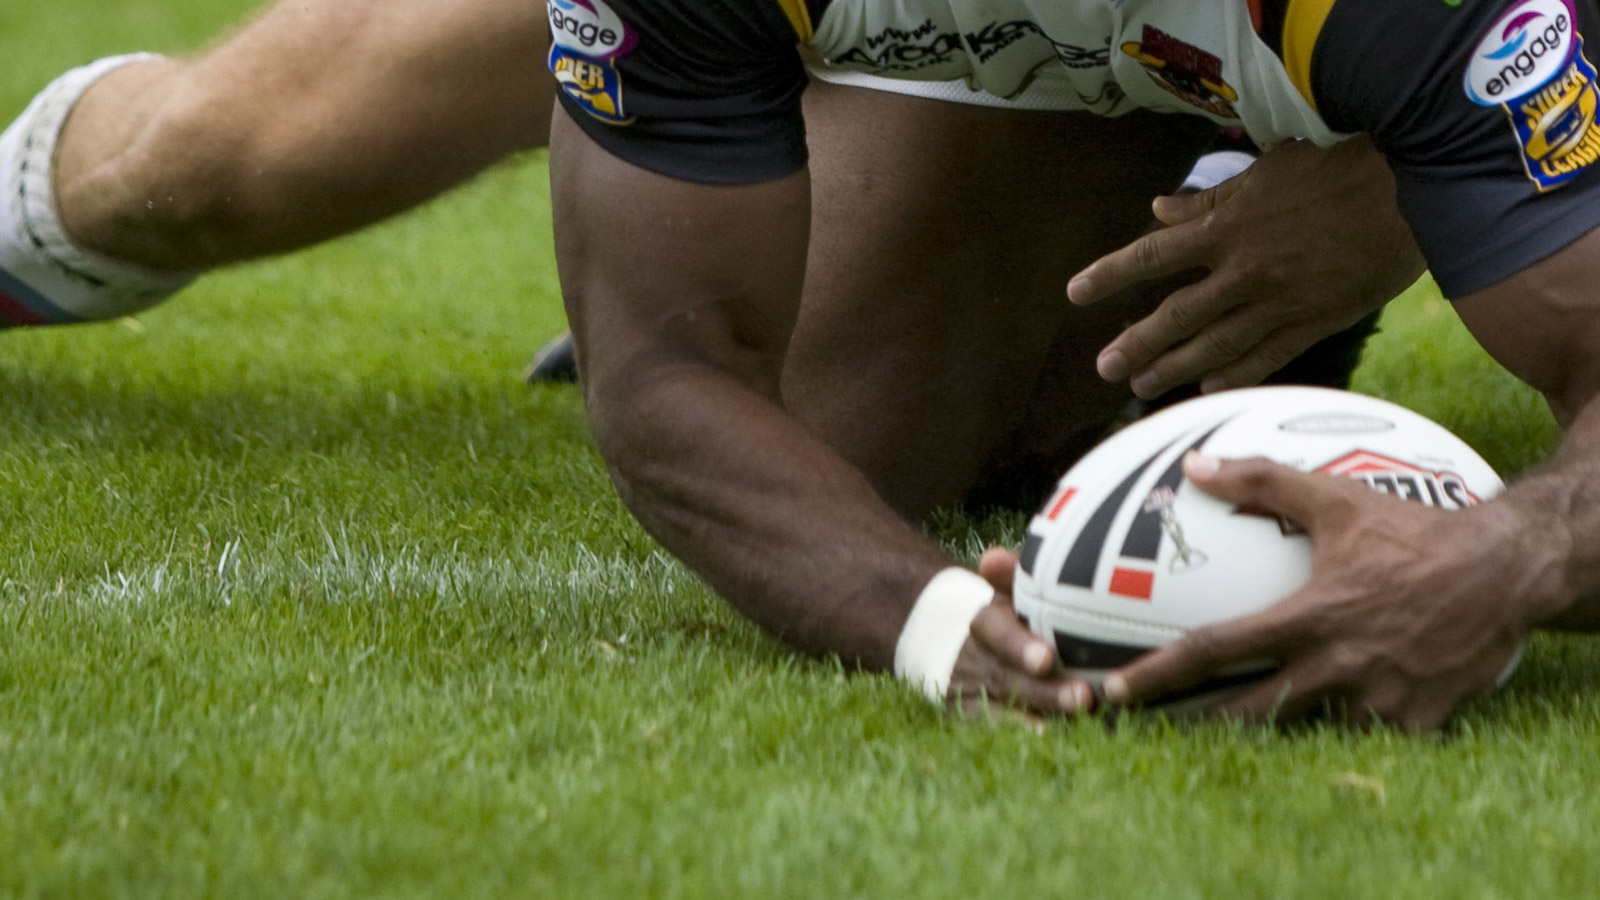 Olbg betting rugby best app for betting on sports